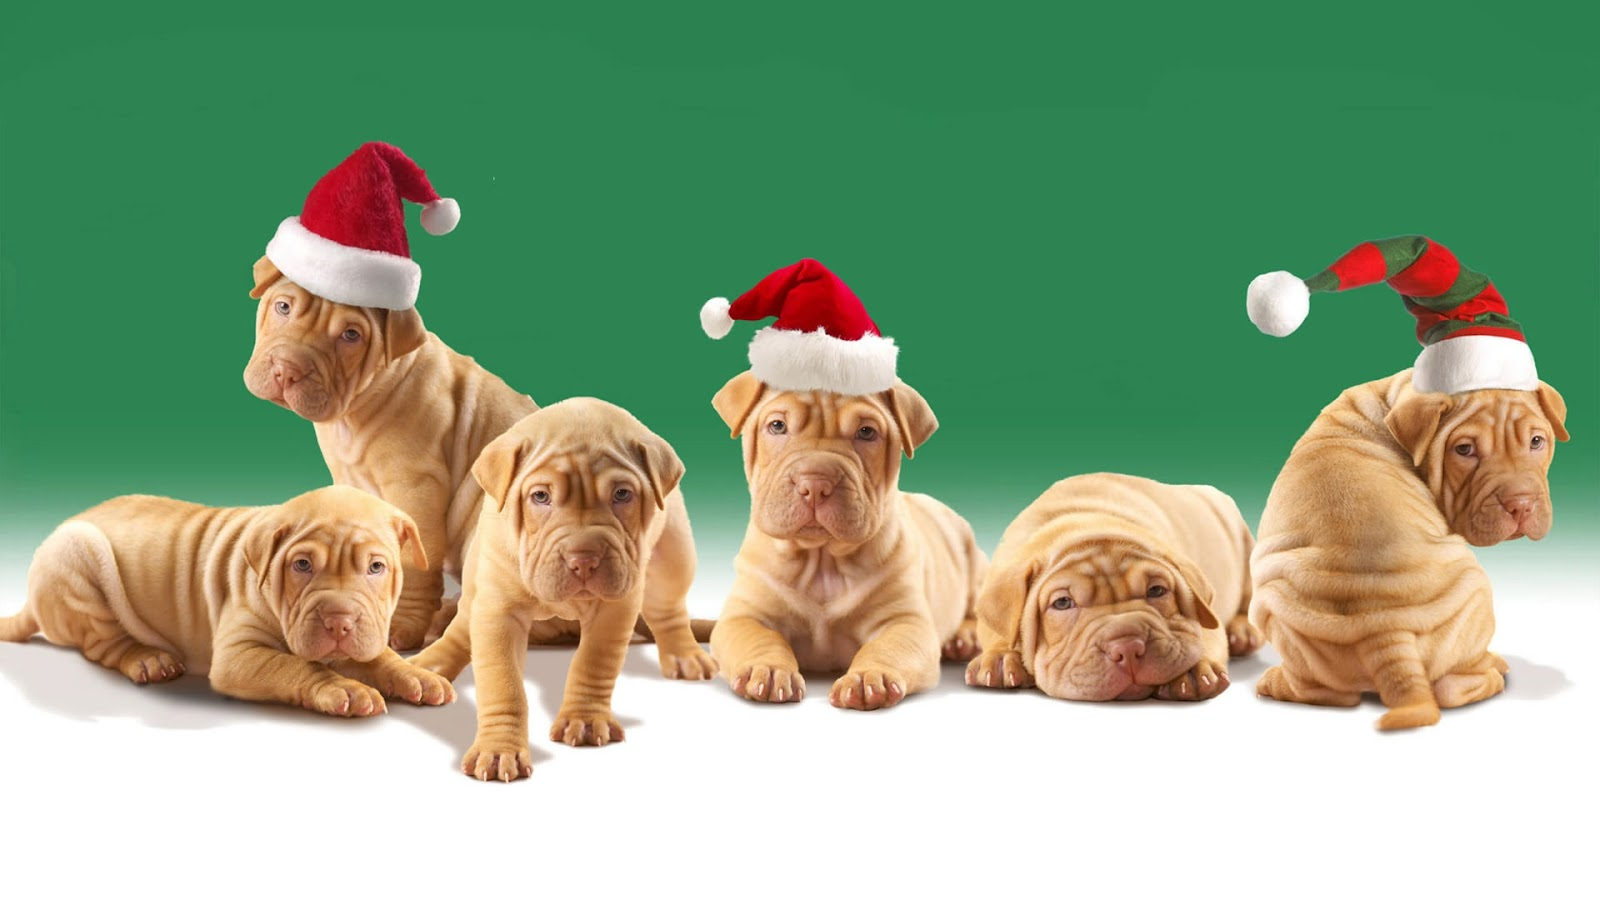 sweet dog in christmas wallpapers backgrounds | dogs wallpapers